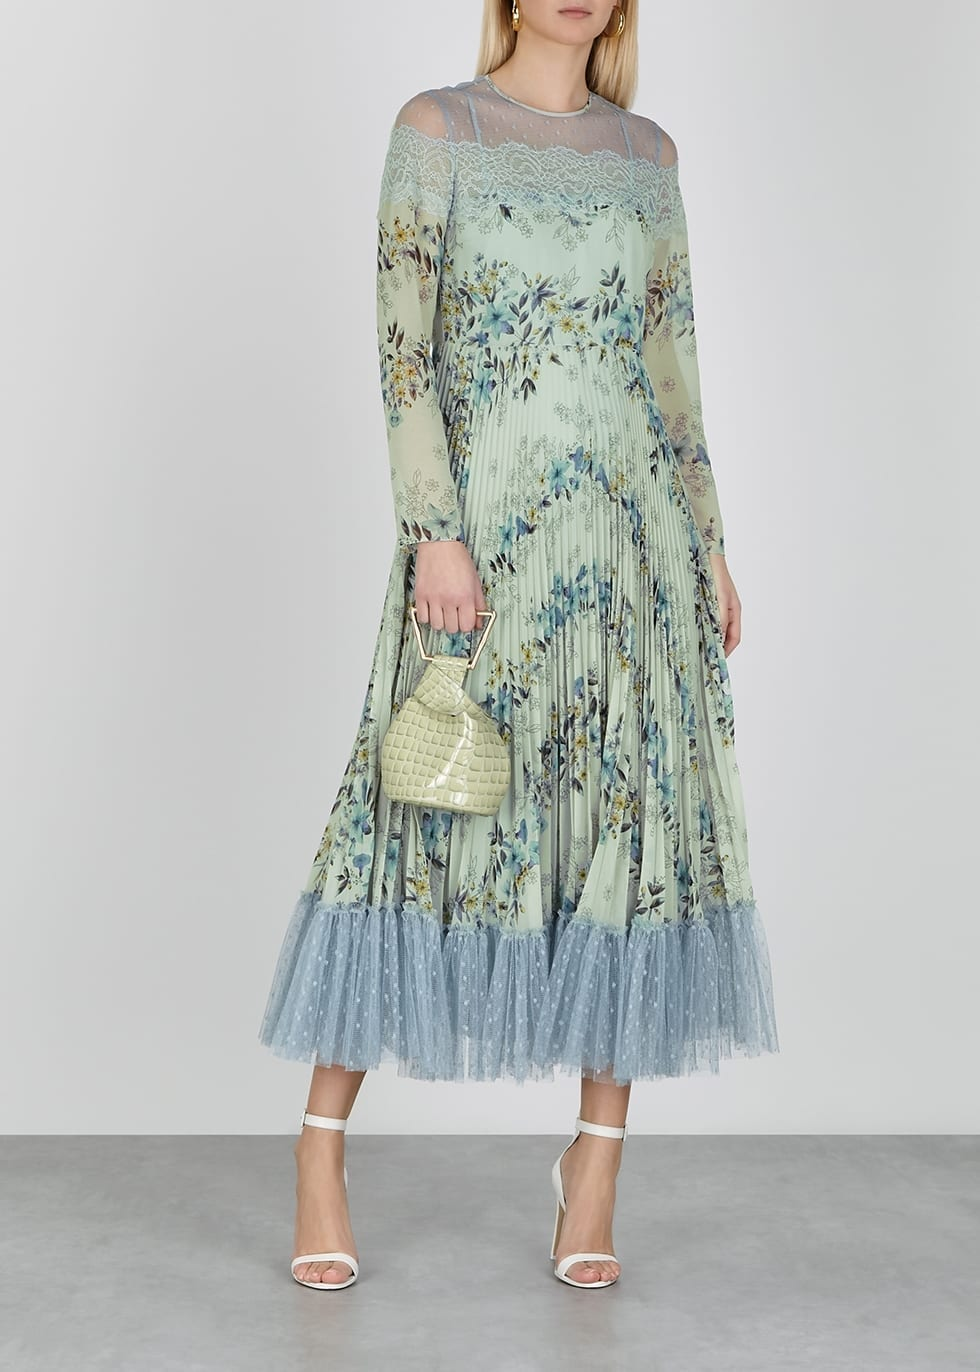 RED VALENTINO Floral-print Lace-trimmed Chiffon Midi Dress